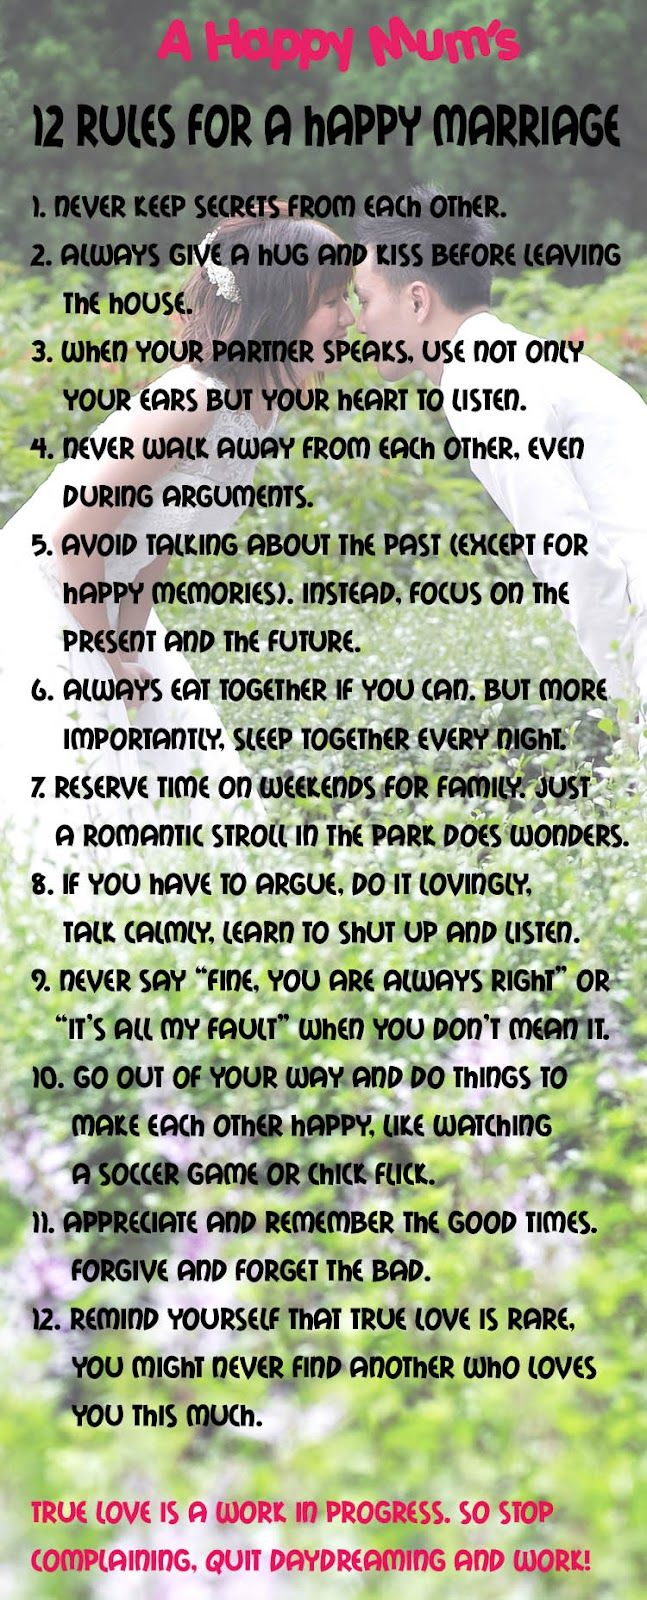 Life Quotes Inspiration 12 Rules For A Happy Marriage Omg Quotes Your Daily Dose Of Motivation Positivity Quotes Sayings Short Stories